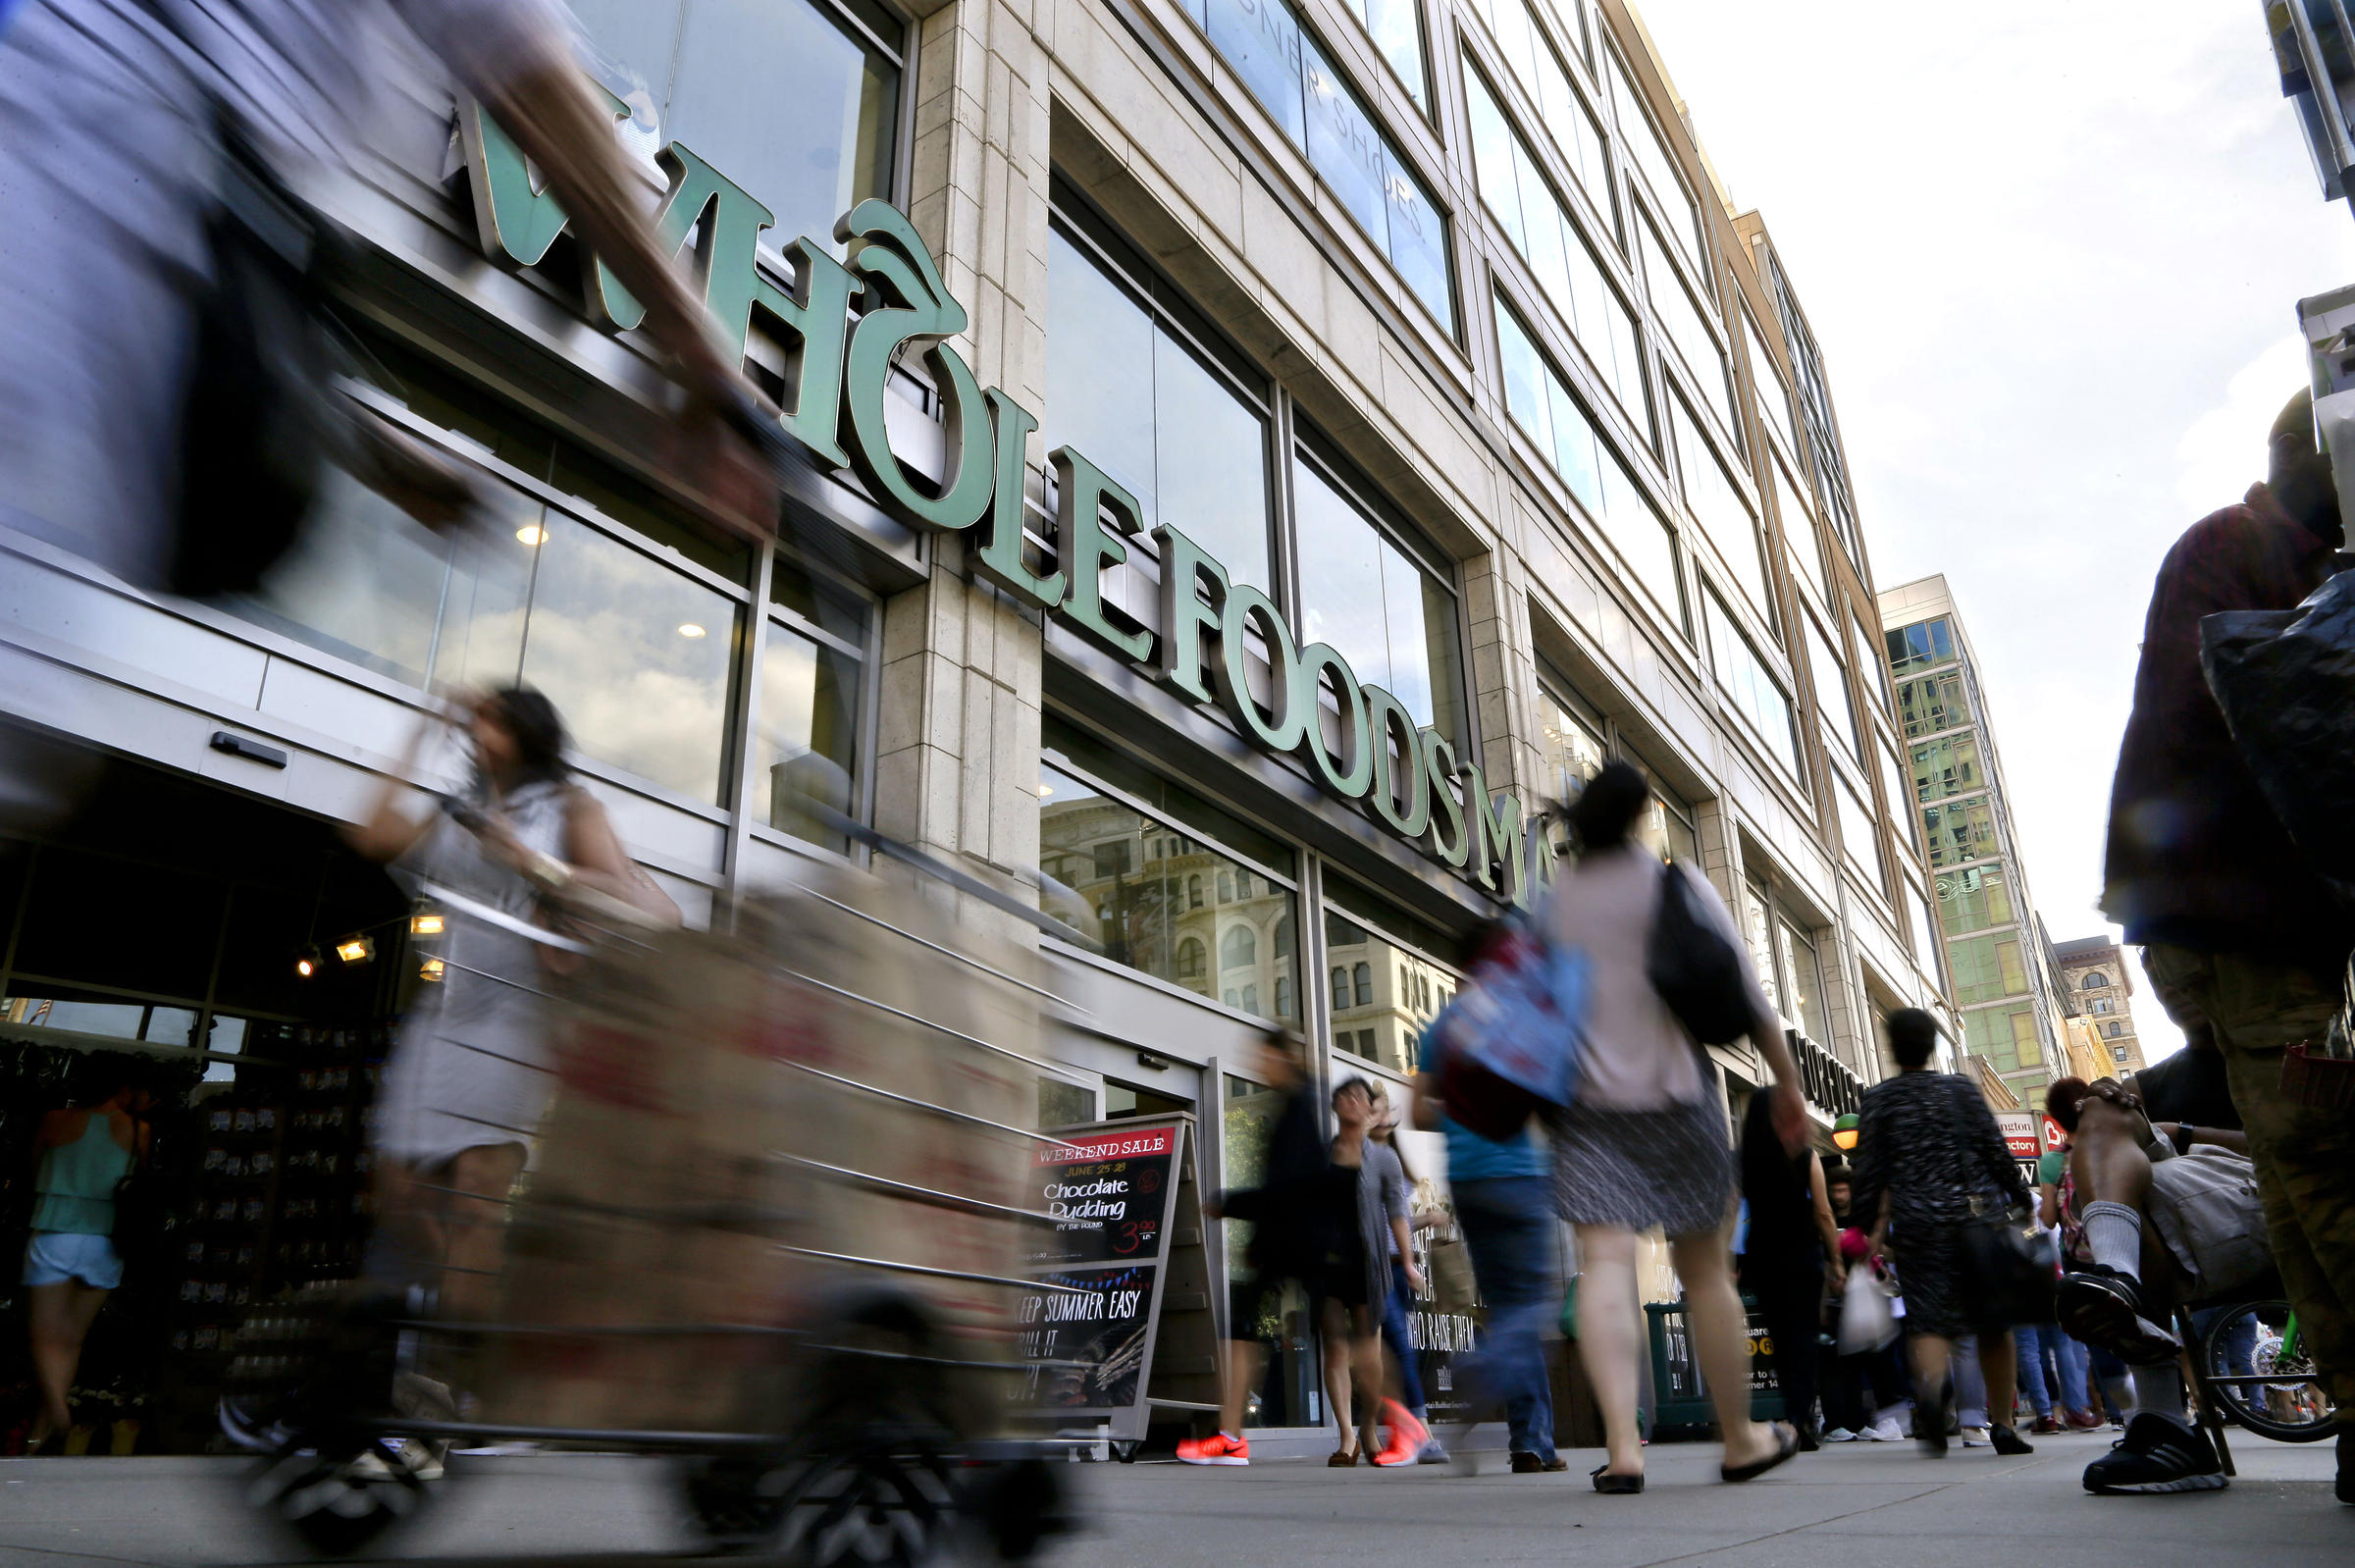 Amazon Buys Whole Foods Market at Whooping 13.7 bln Dollars